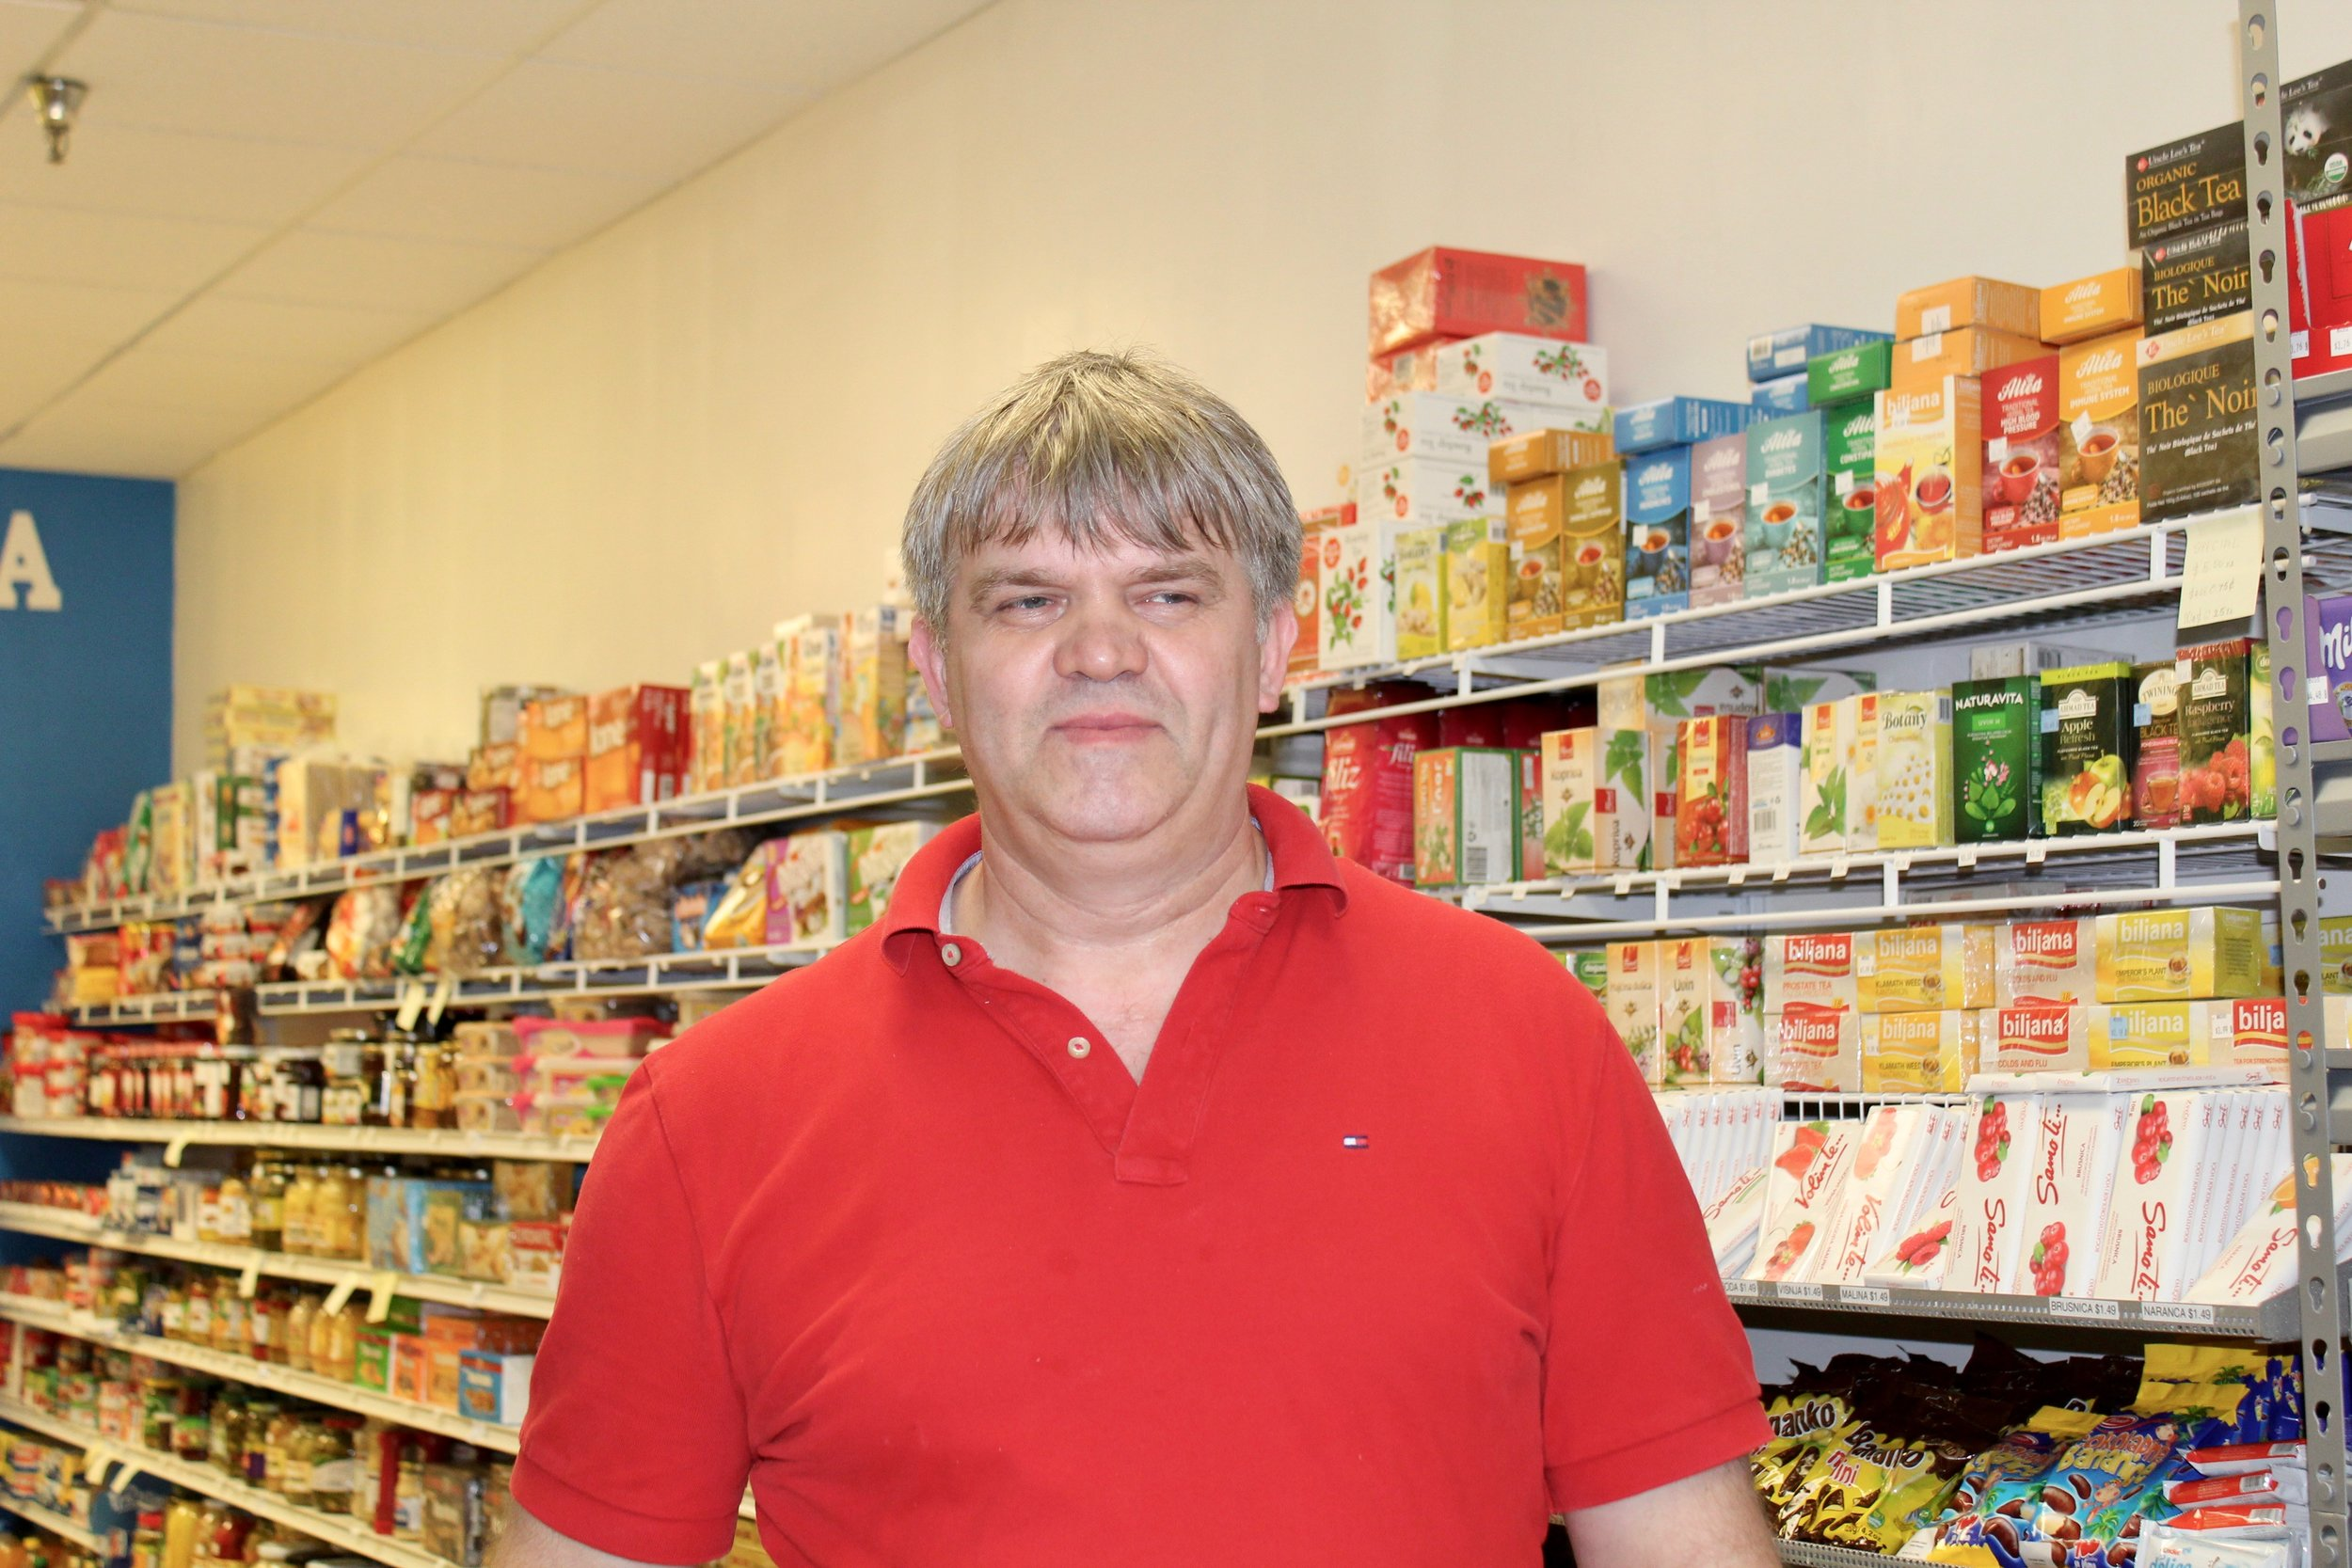 Sabit Selimovic and his family own the Bosna Market and recently opened Bosna Restaurant.